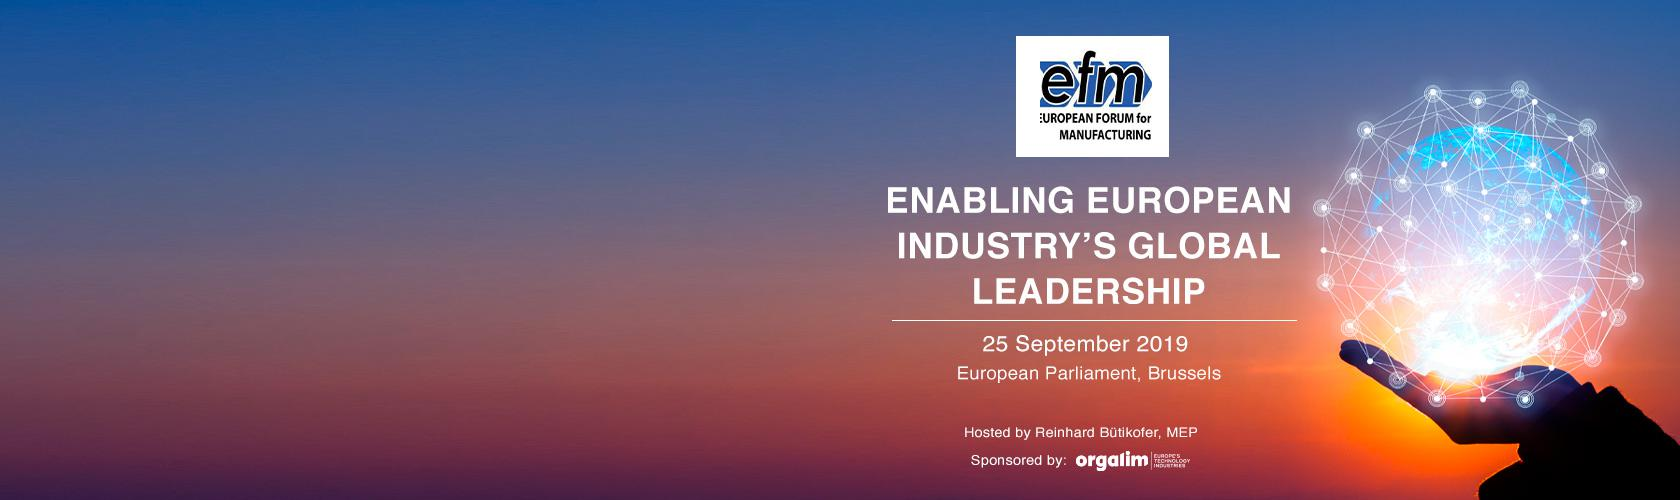 Orgalim and EFM event: Enabling European industry's global leadership